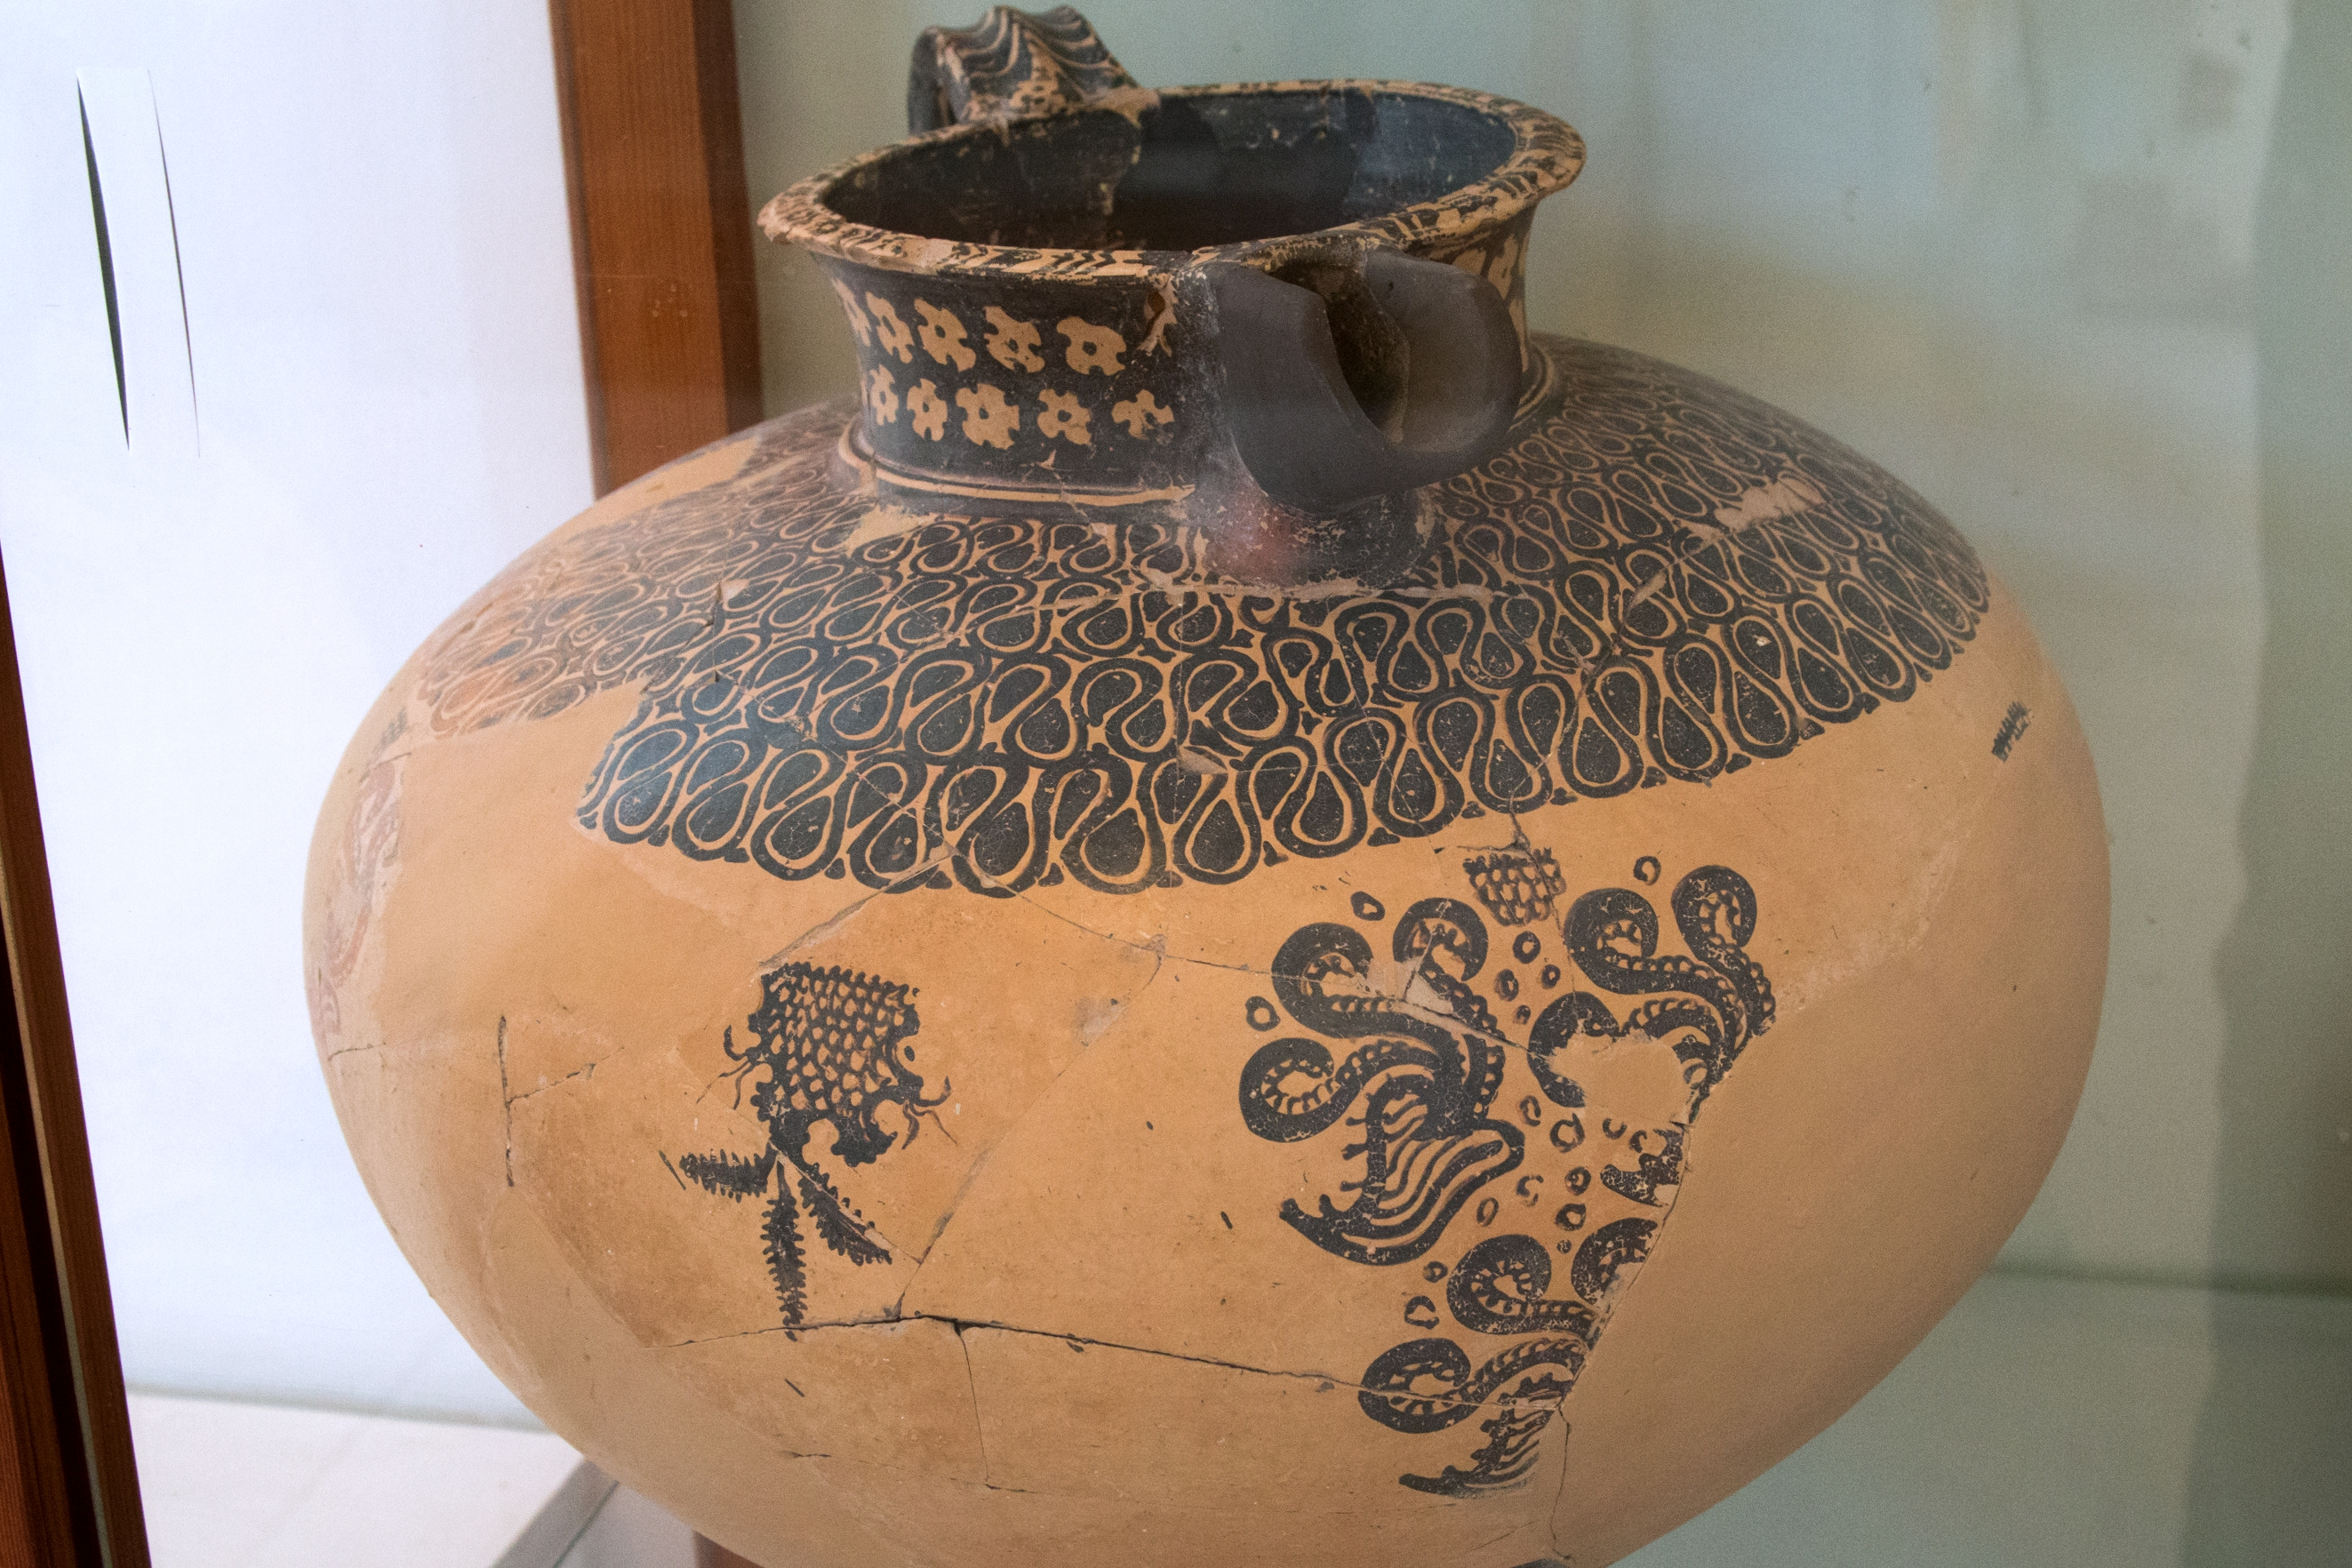 minoan pottery Middle minoan pottery was transformed by the introduction of the fast pottery wheel, an innovation that led to finer wares, which, in turn, led to finer decoration kamares ware is decorated with abstract designs, often in complex patterns.